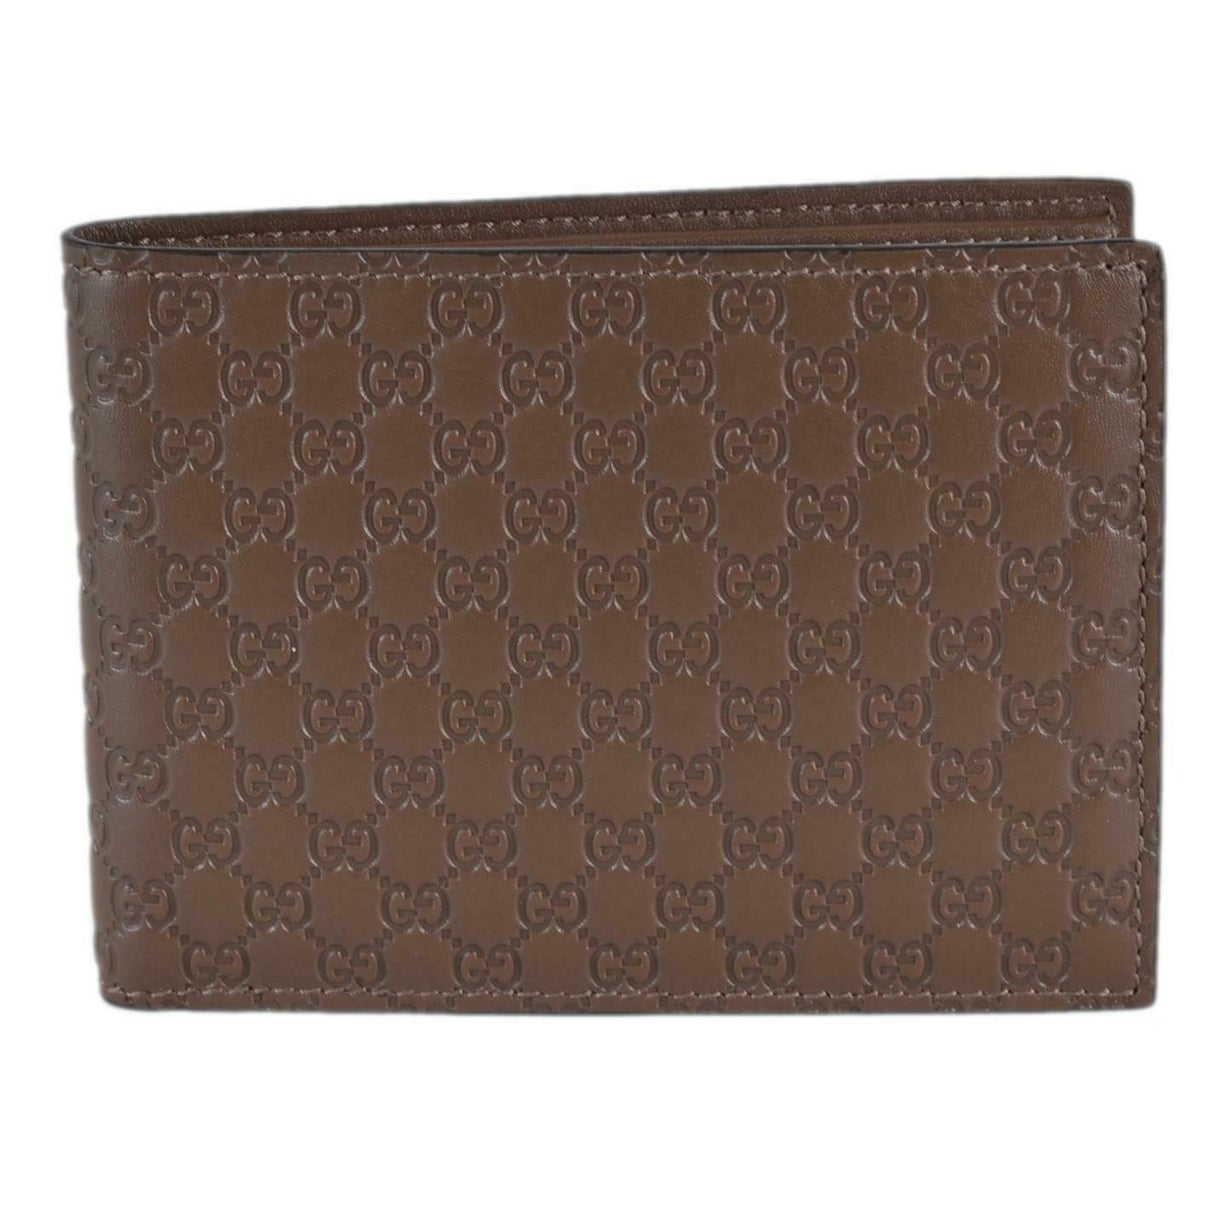 d14a35ccb857 Shop Gucci Men's 278596 Acero Brown Micro GG Guccissima Large Bifold Wallet  - 5